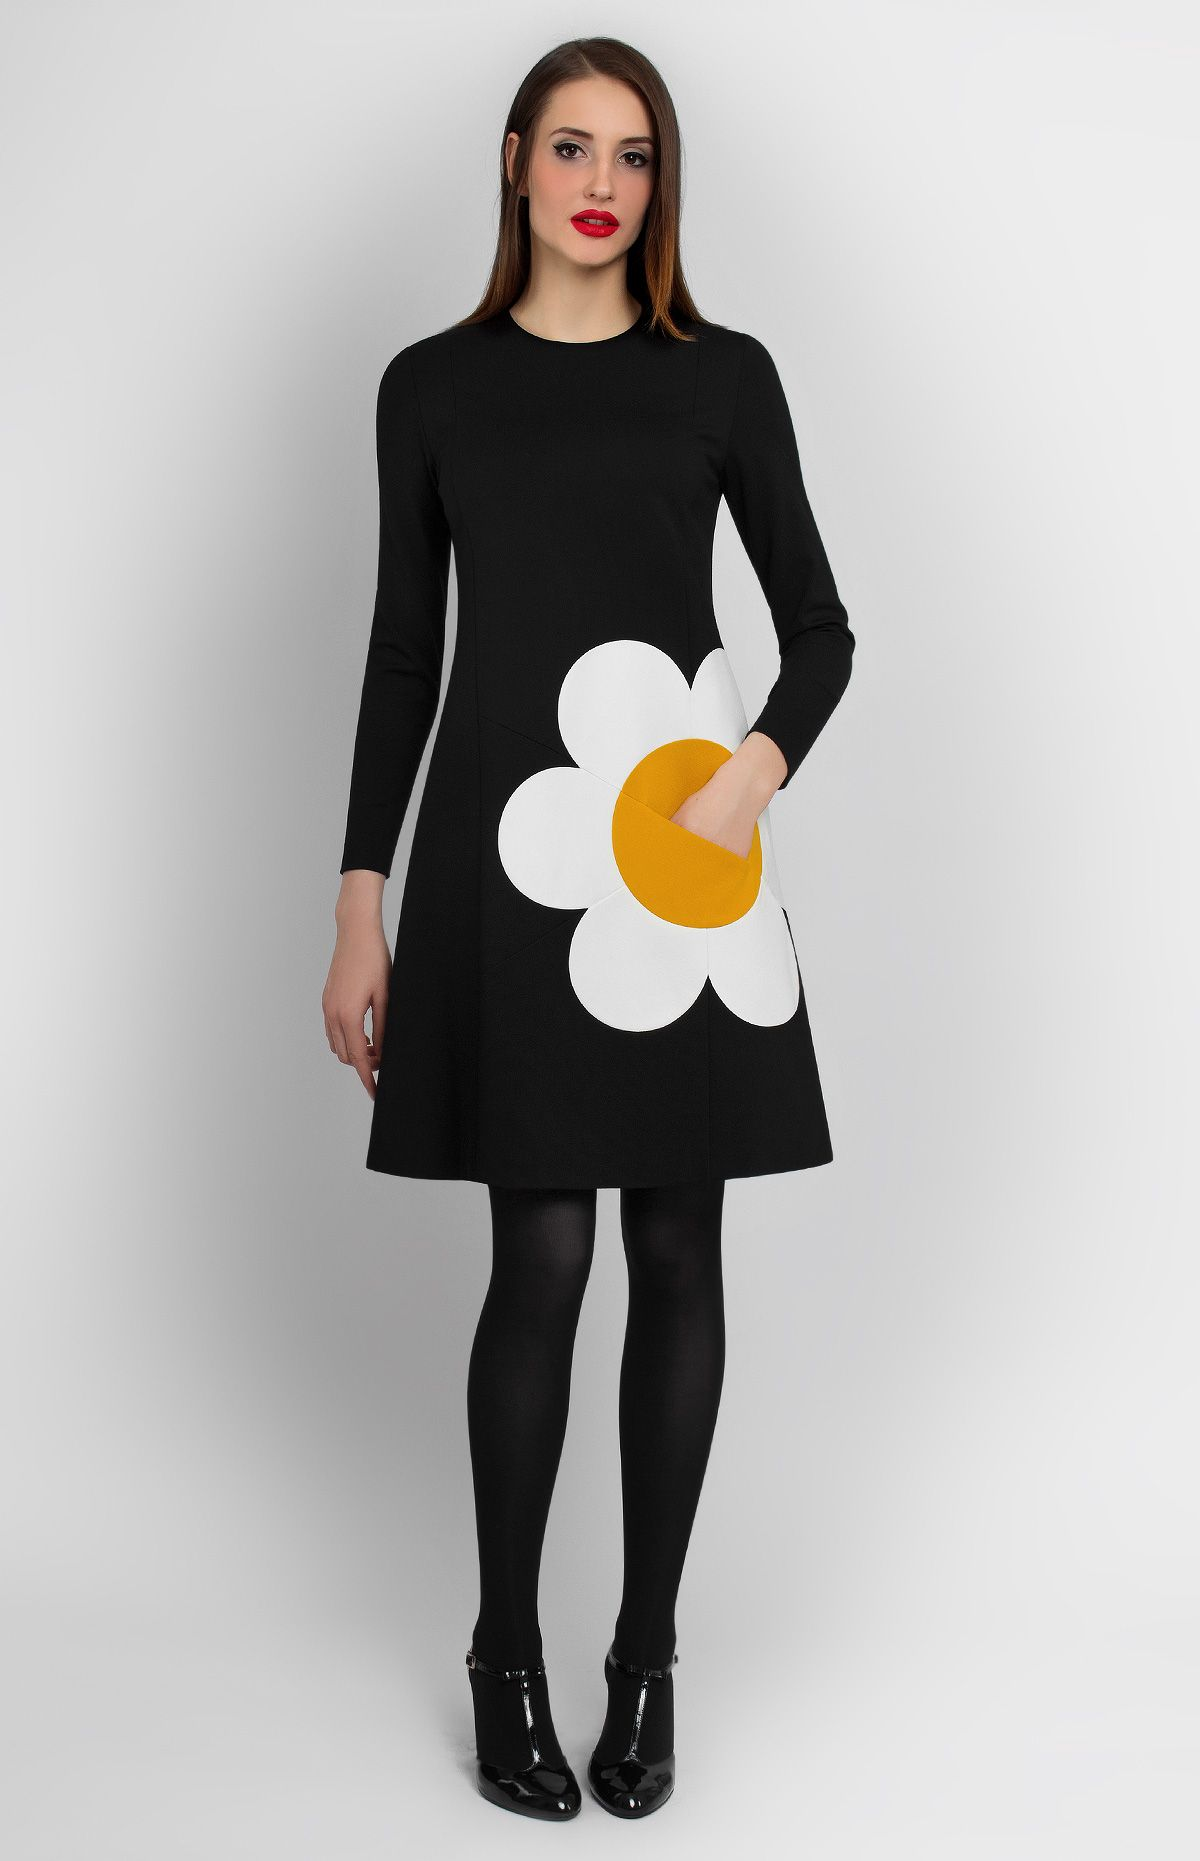 Long-sleeve A-shape knitted dress. Hidden pocket in the middle of the